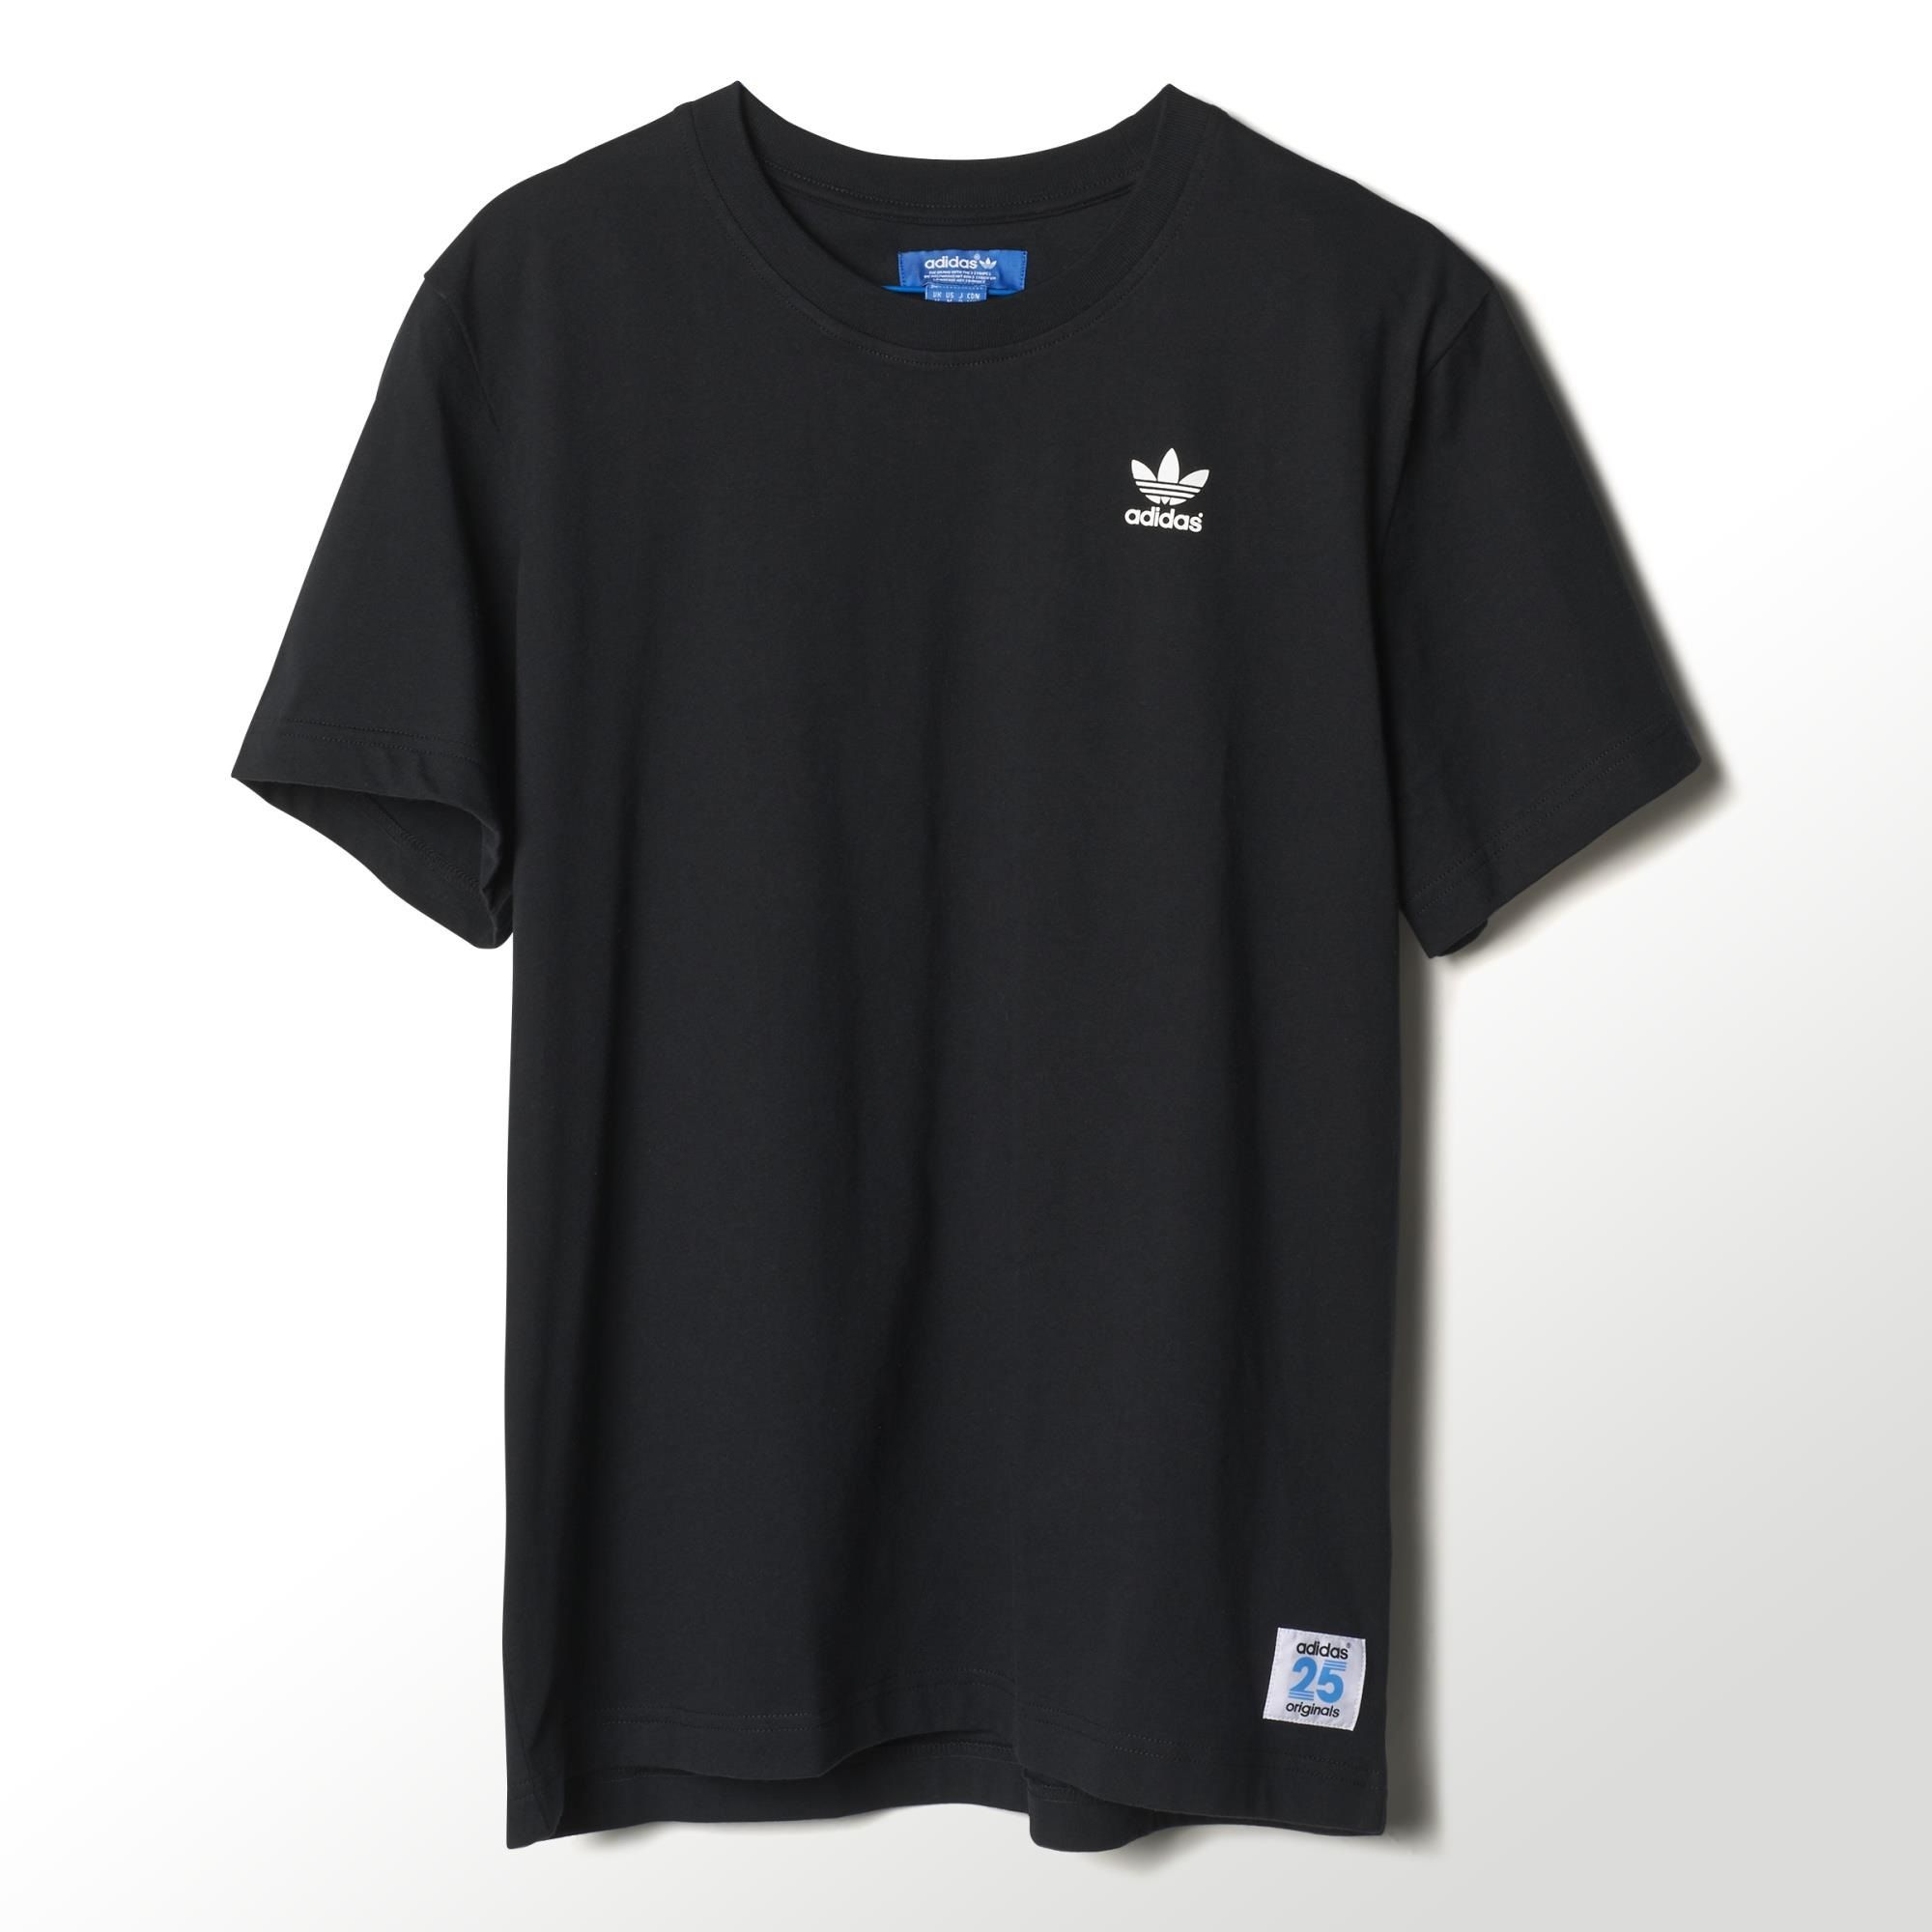 on sale 529da 80e74 Adidas x nigo | adidas originals forever | Pinterest ...